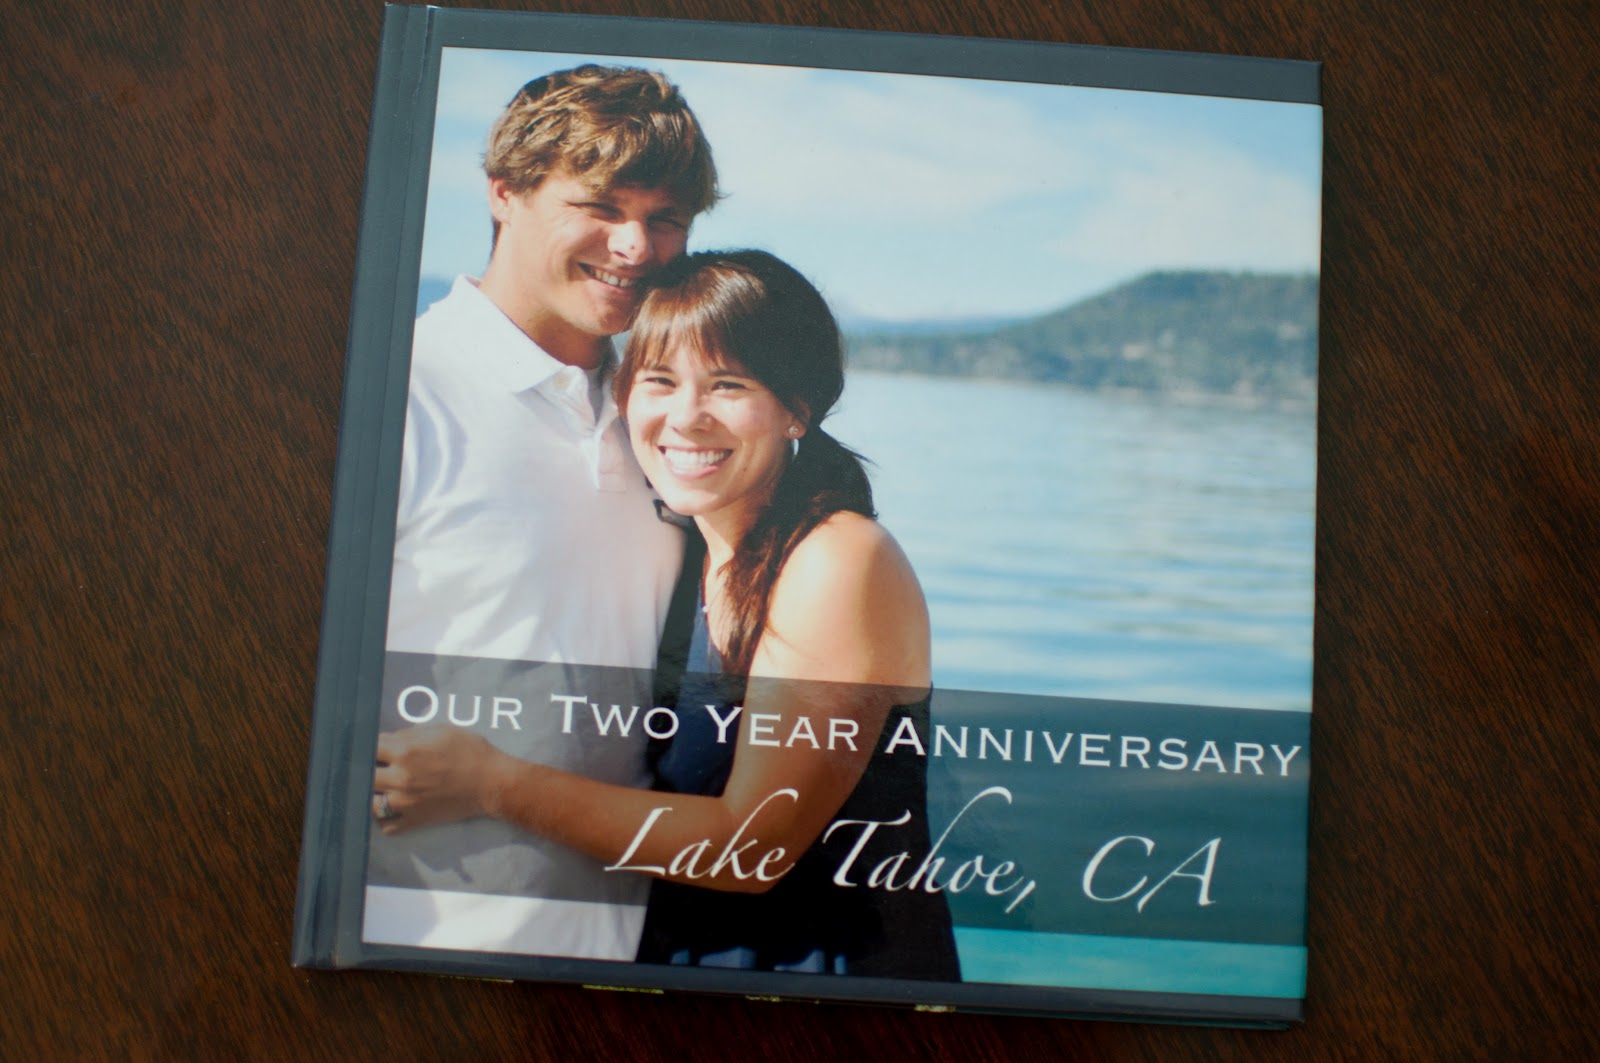 Domestic fashionista: two year anniversary shutterfly photo book